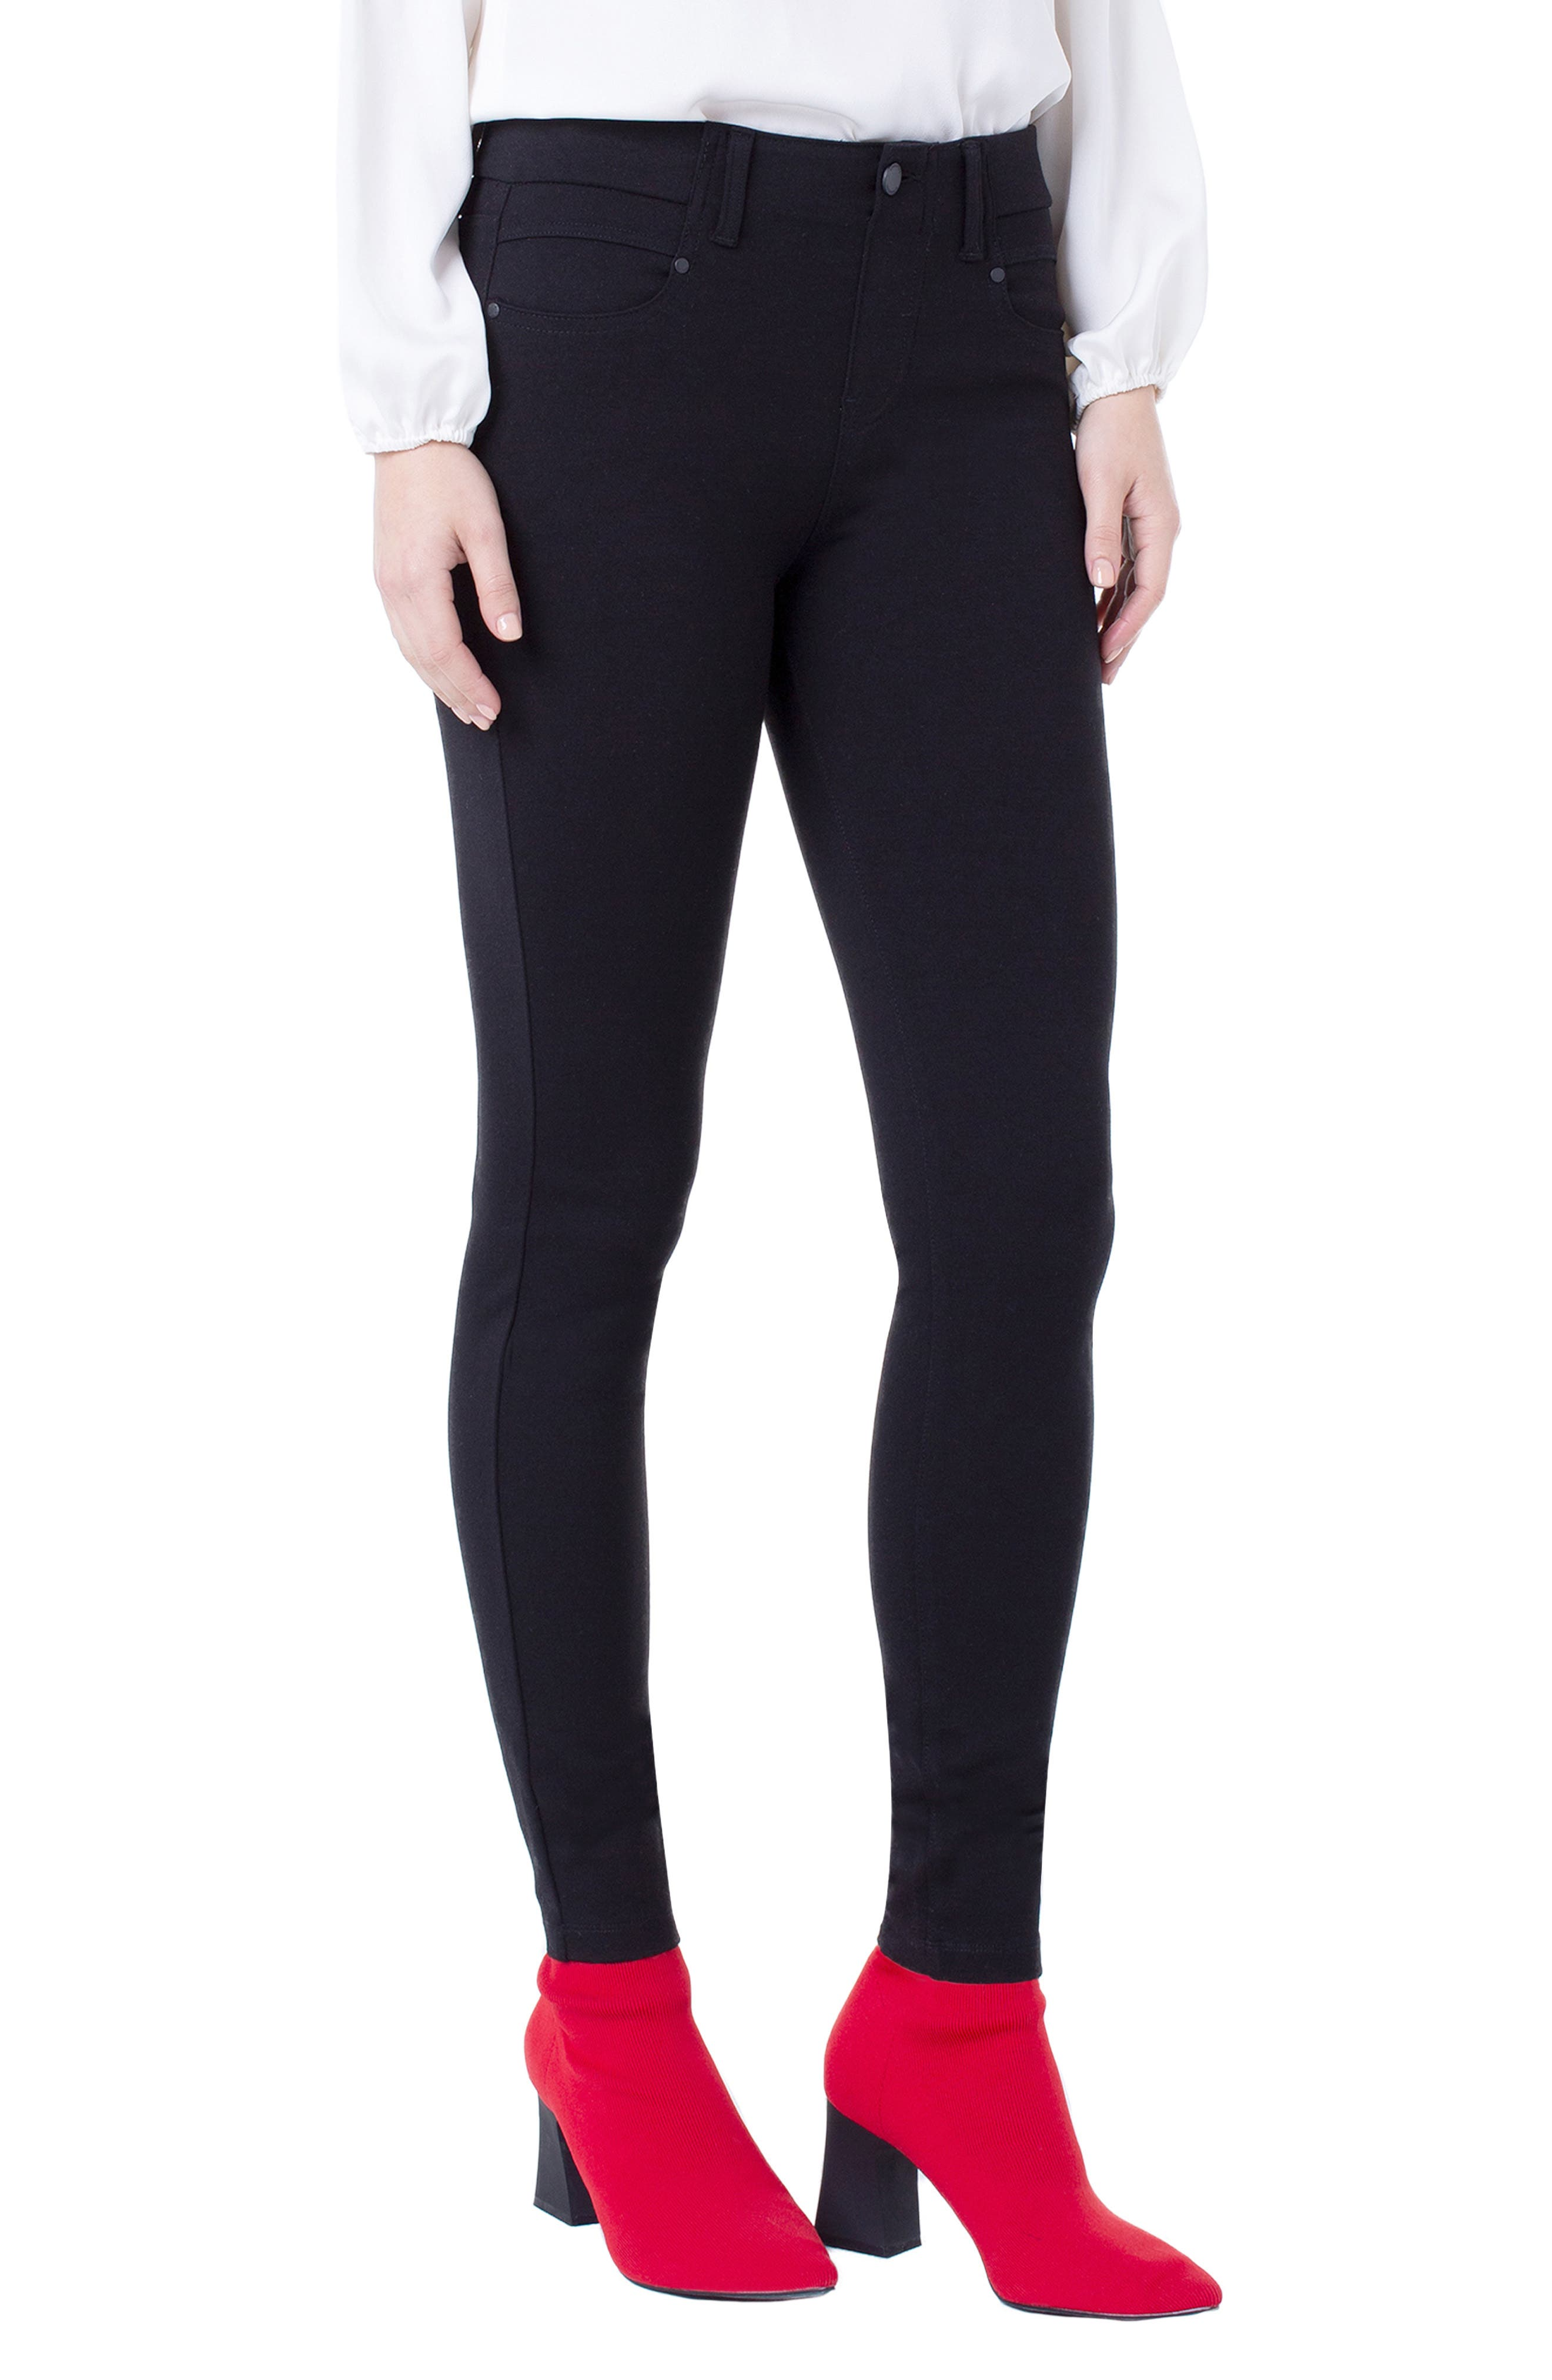 Gia Glider Knit Pull-On Pants